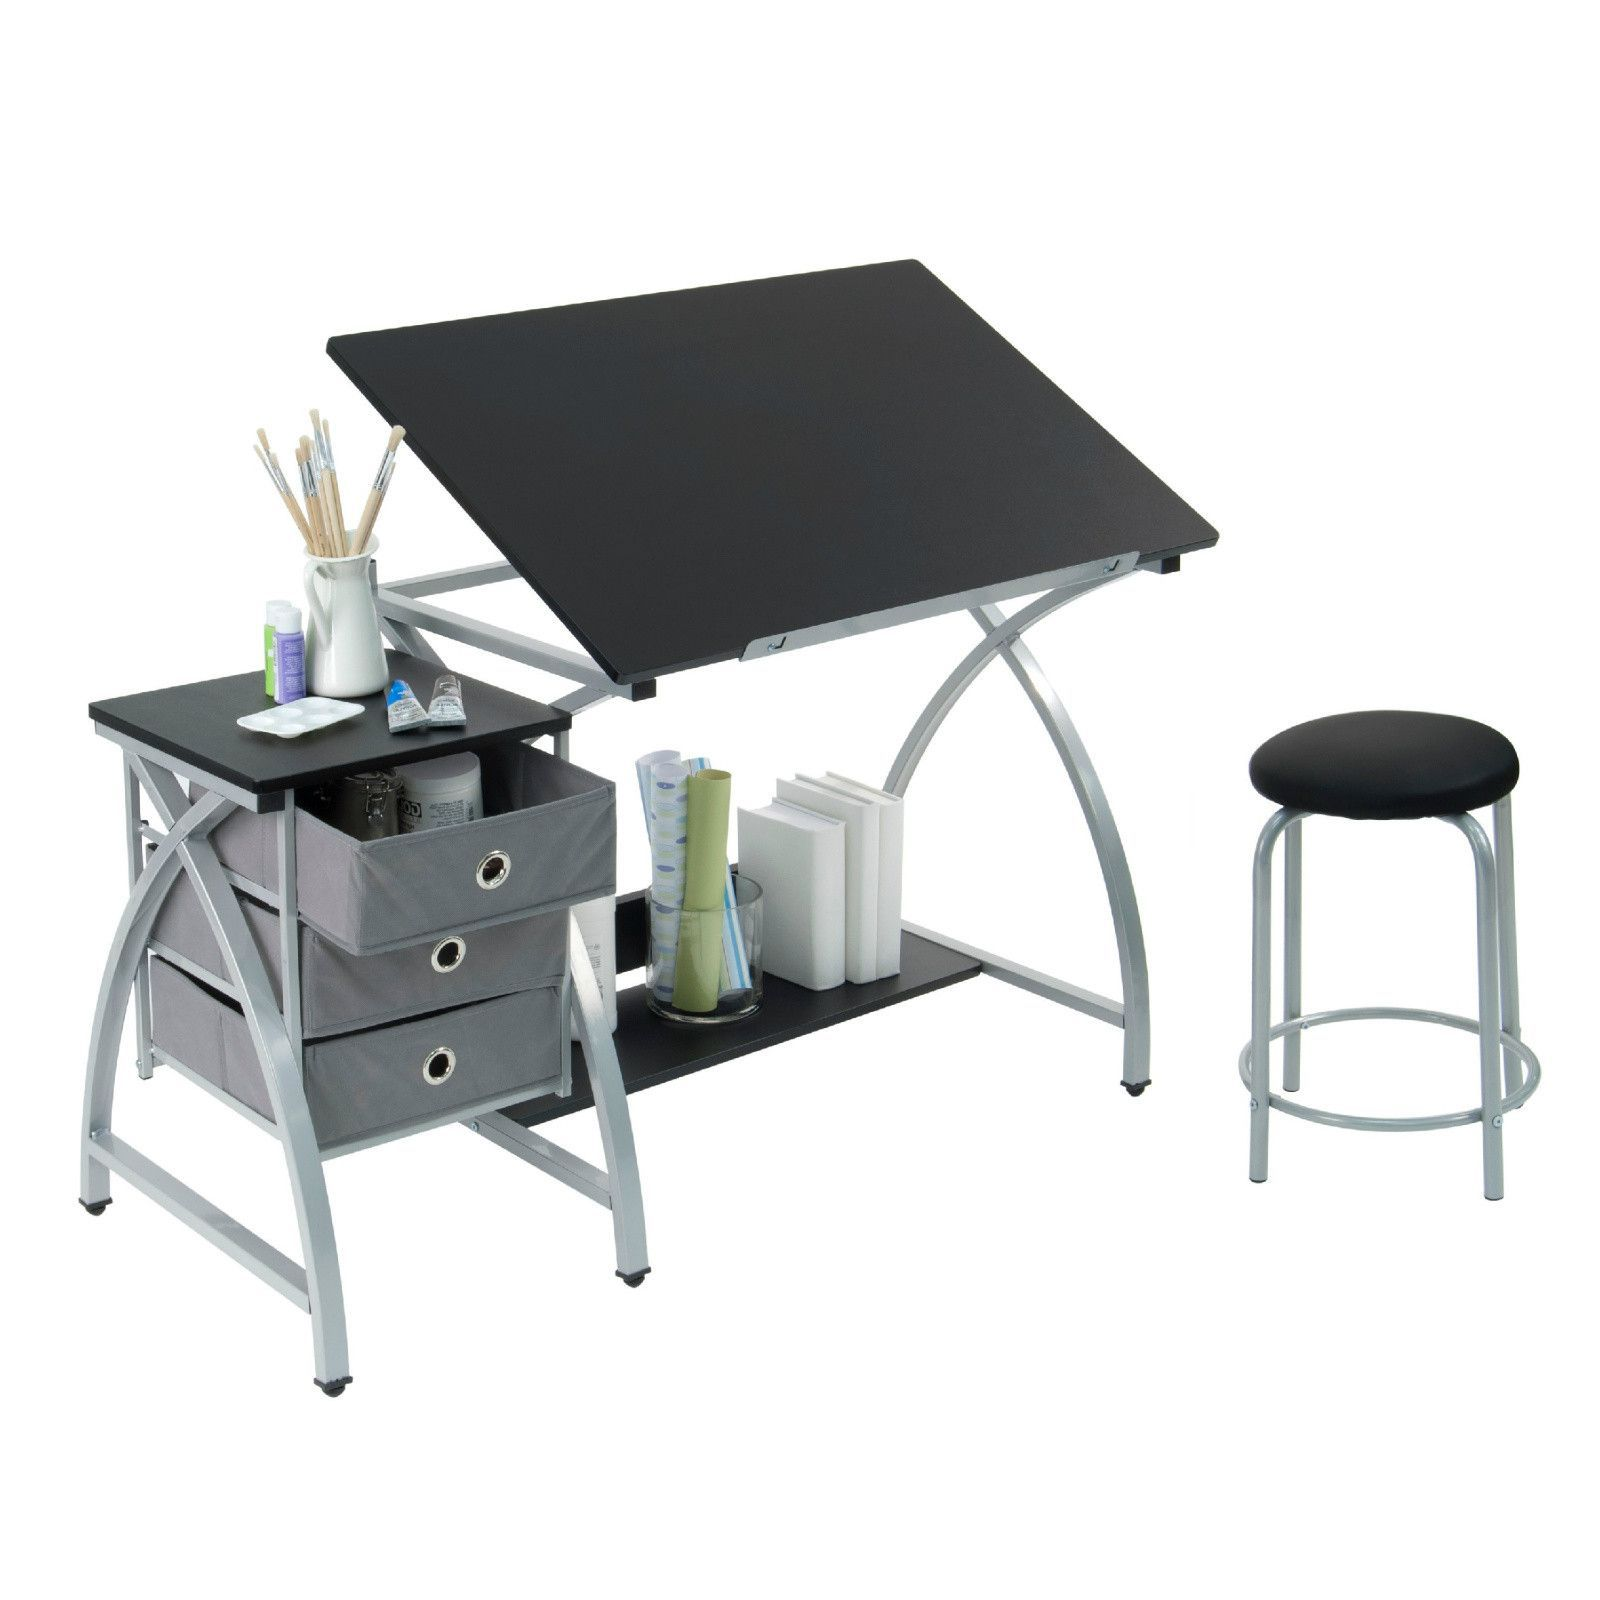 Craft Table With Storage Stool Included